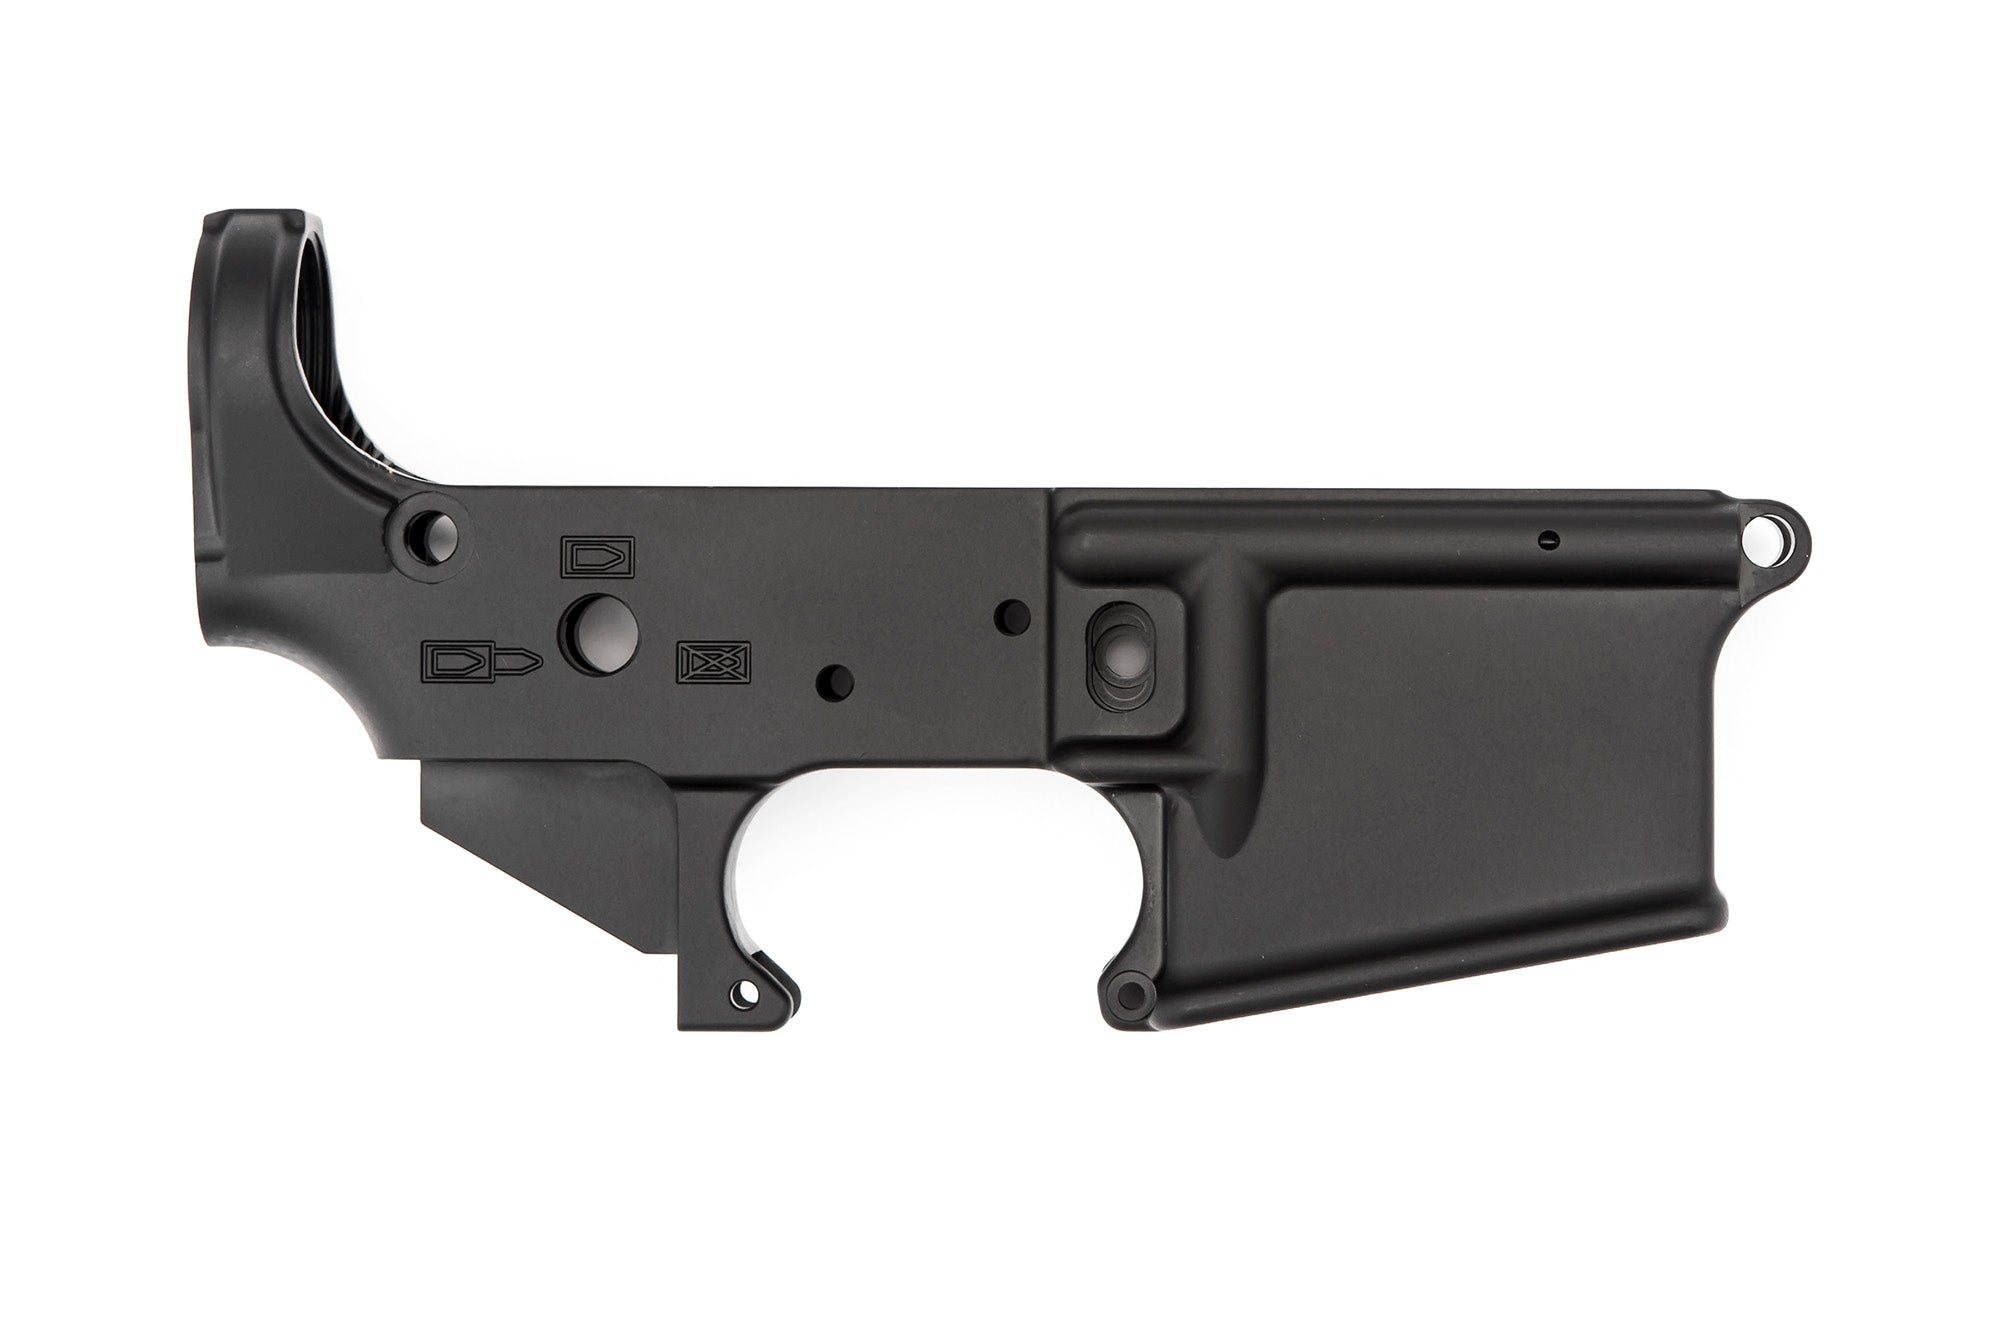 No Logo Stripped Lower Receiver